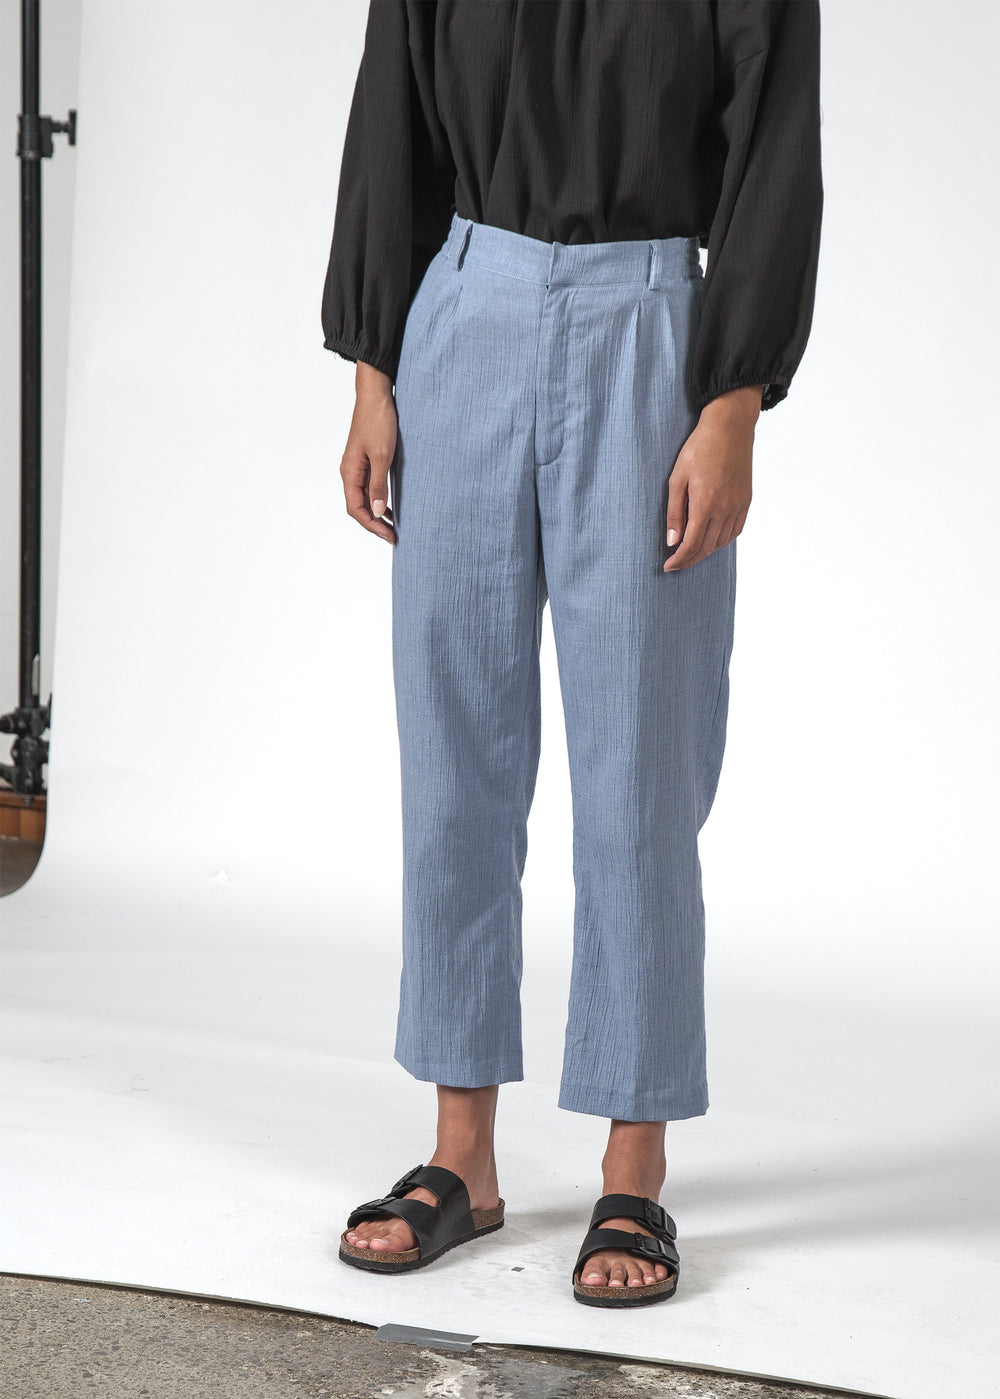 THE REMY PANT CHAMBRAY